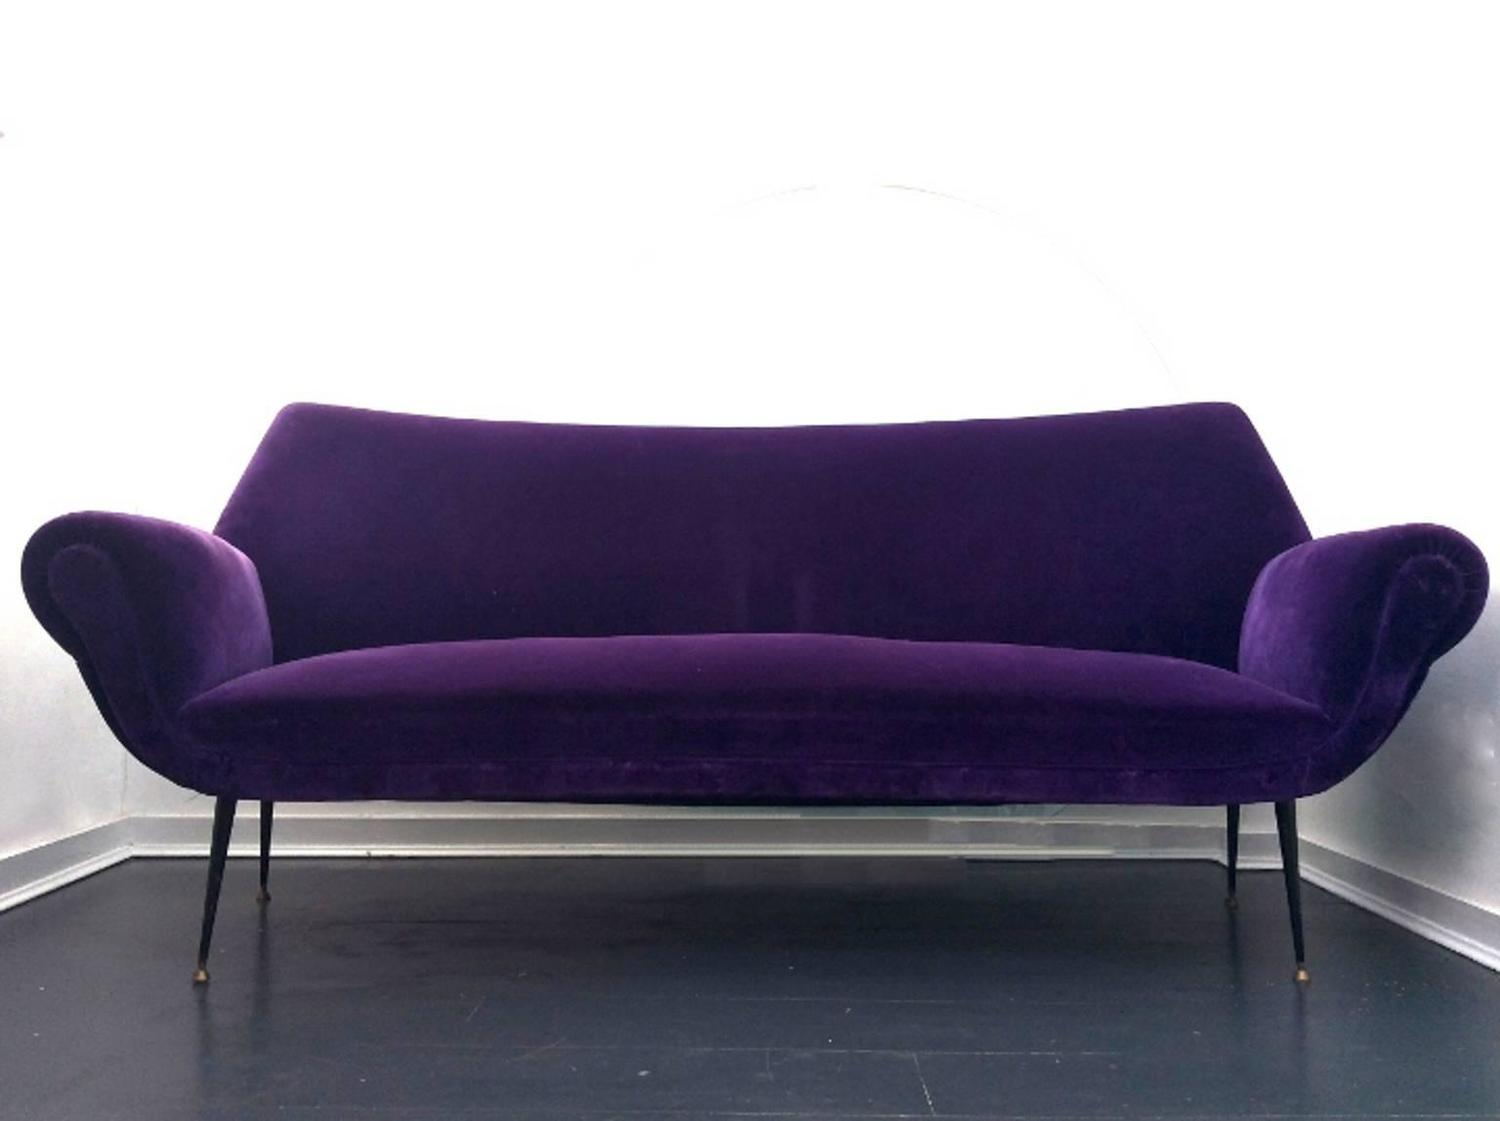 curved sofa in the style of gigi radice italy 1950s for sale at 1stdibs